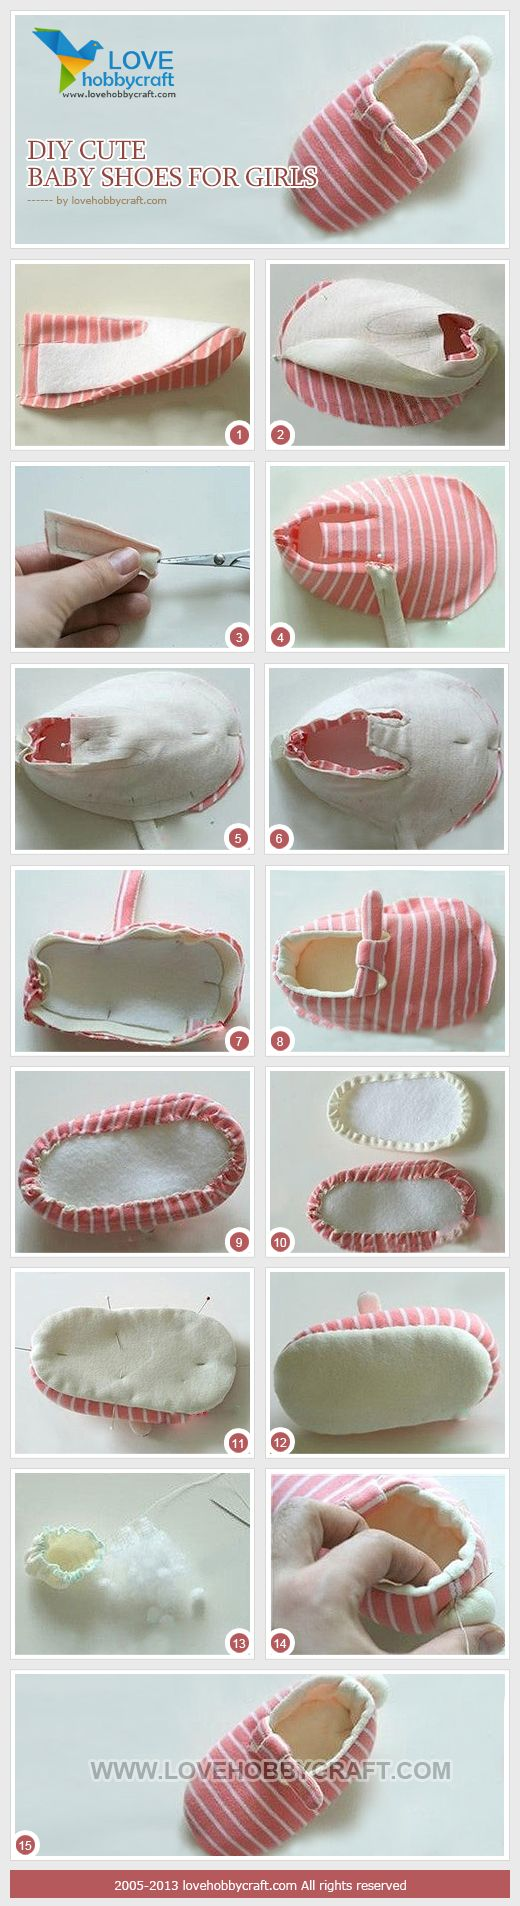 DIY cute baby shoes for girls: